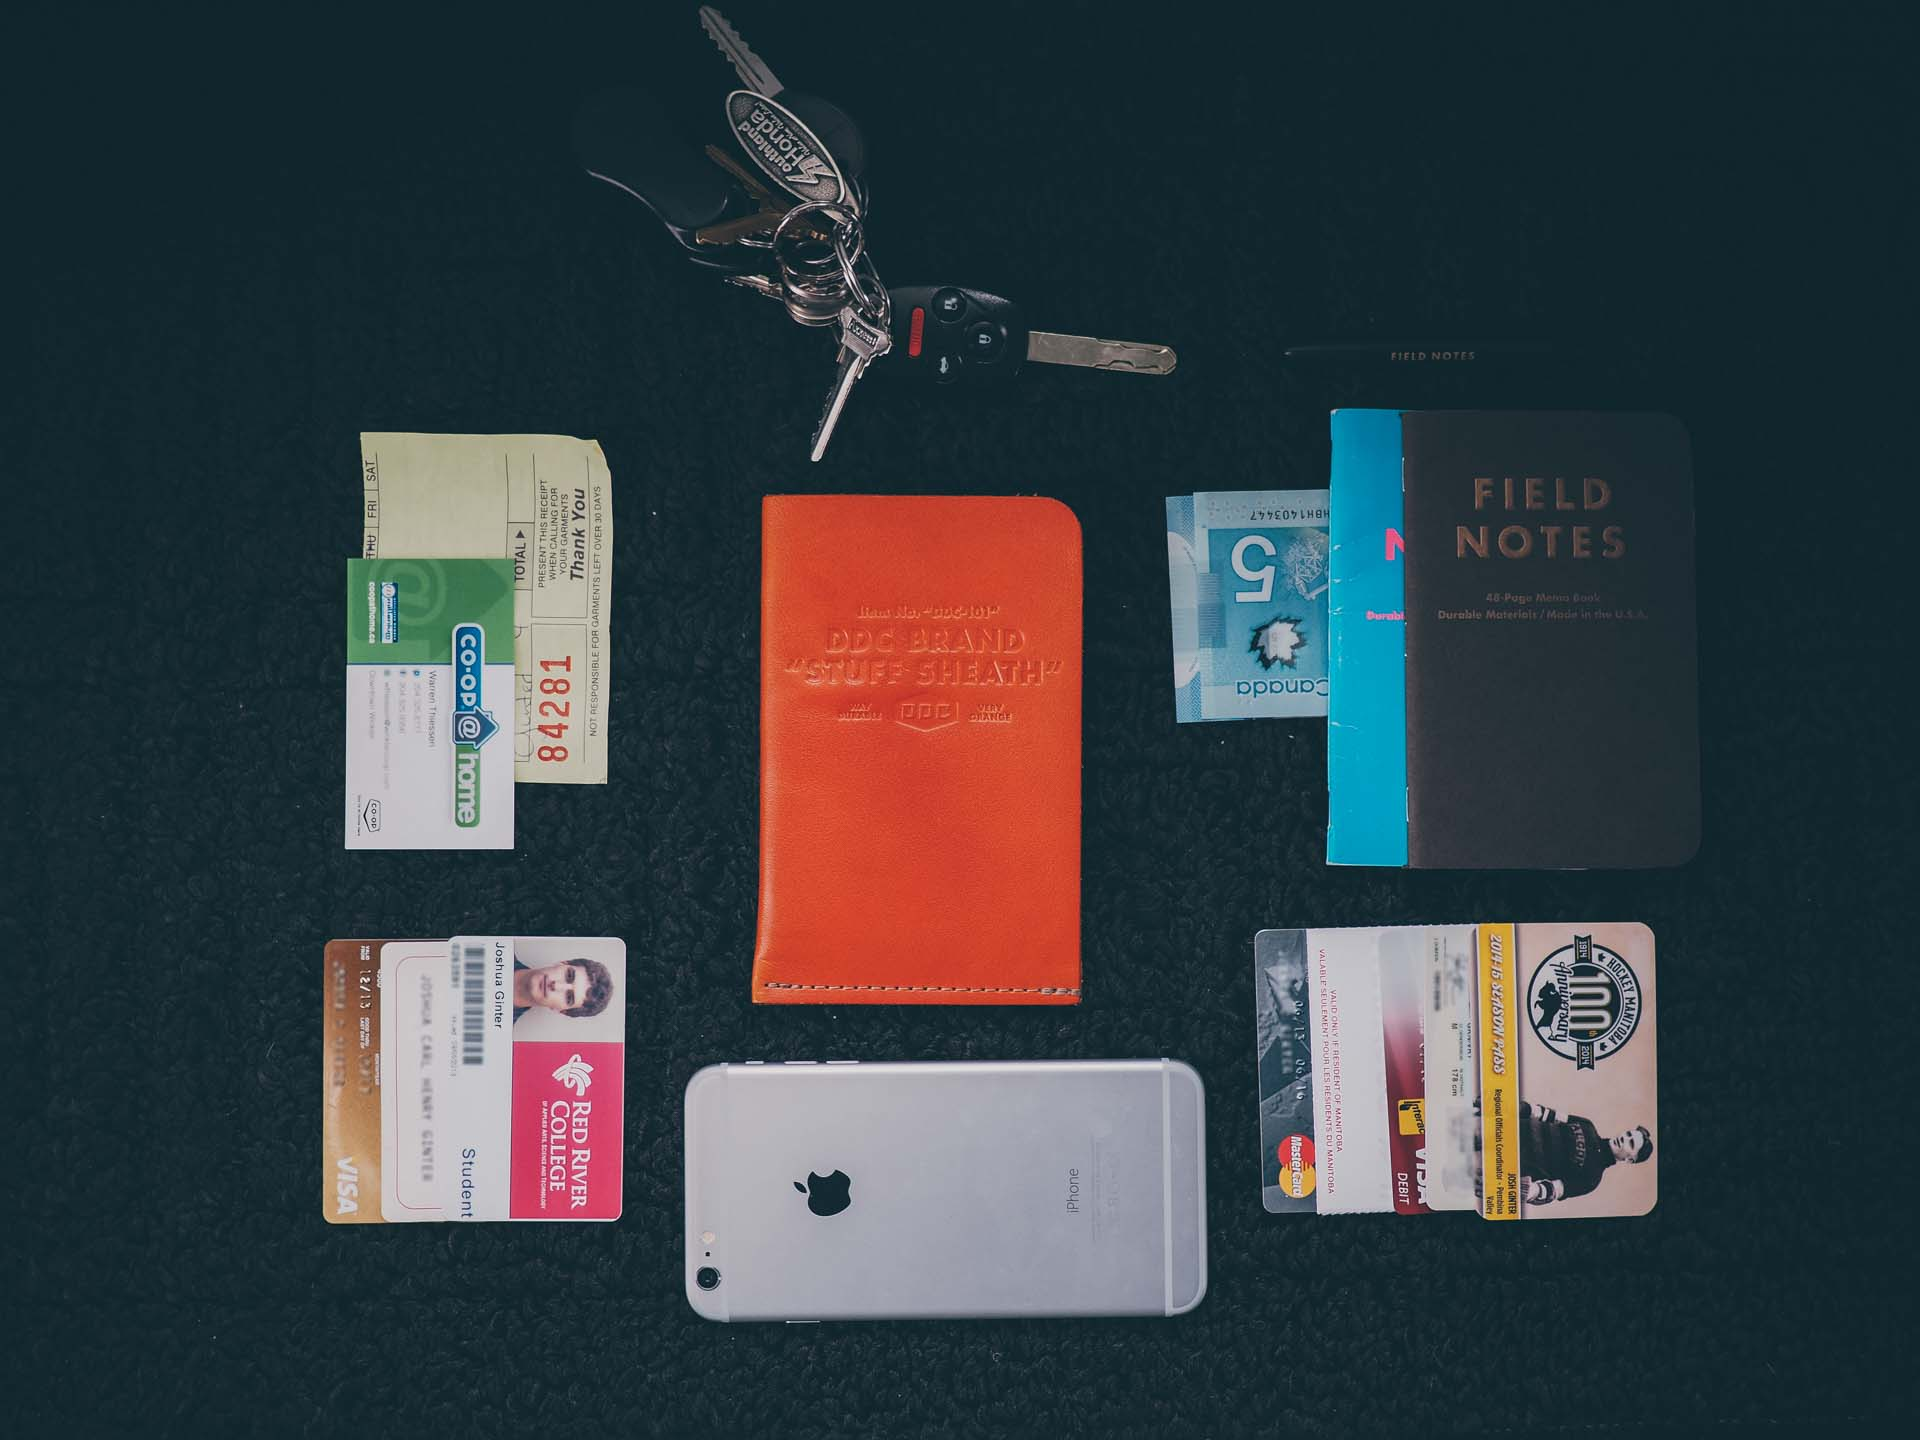 My everyday cary: Keys, iPhone, and the DDC Stuff Sheath stuffed with 8 cards, 2 Field Notes books, a receipt, a business card, and some cash.